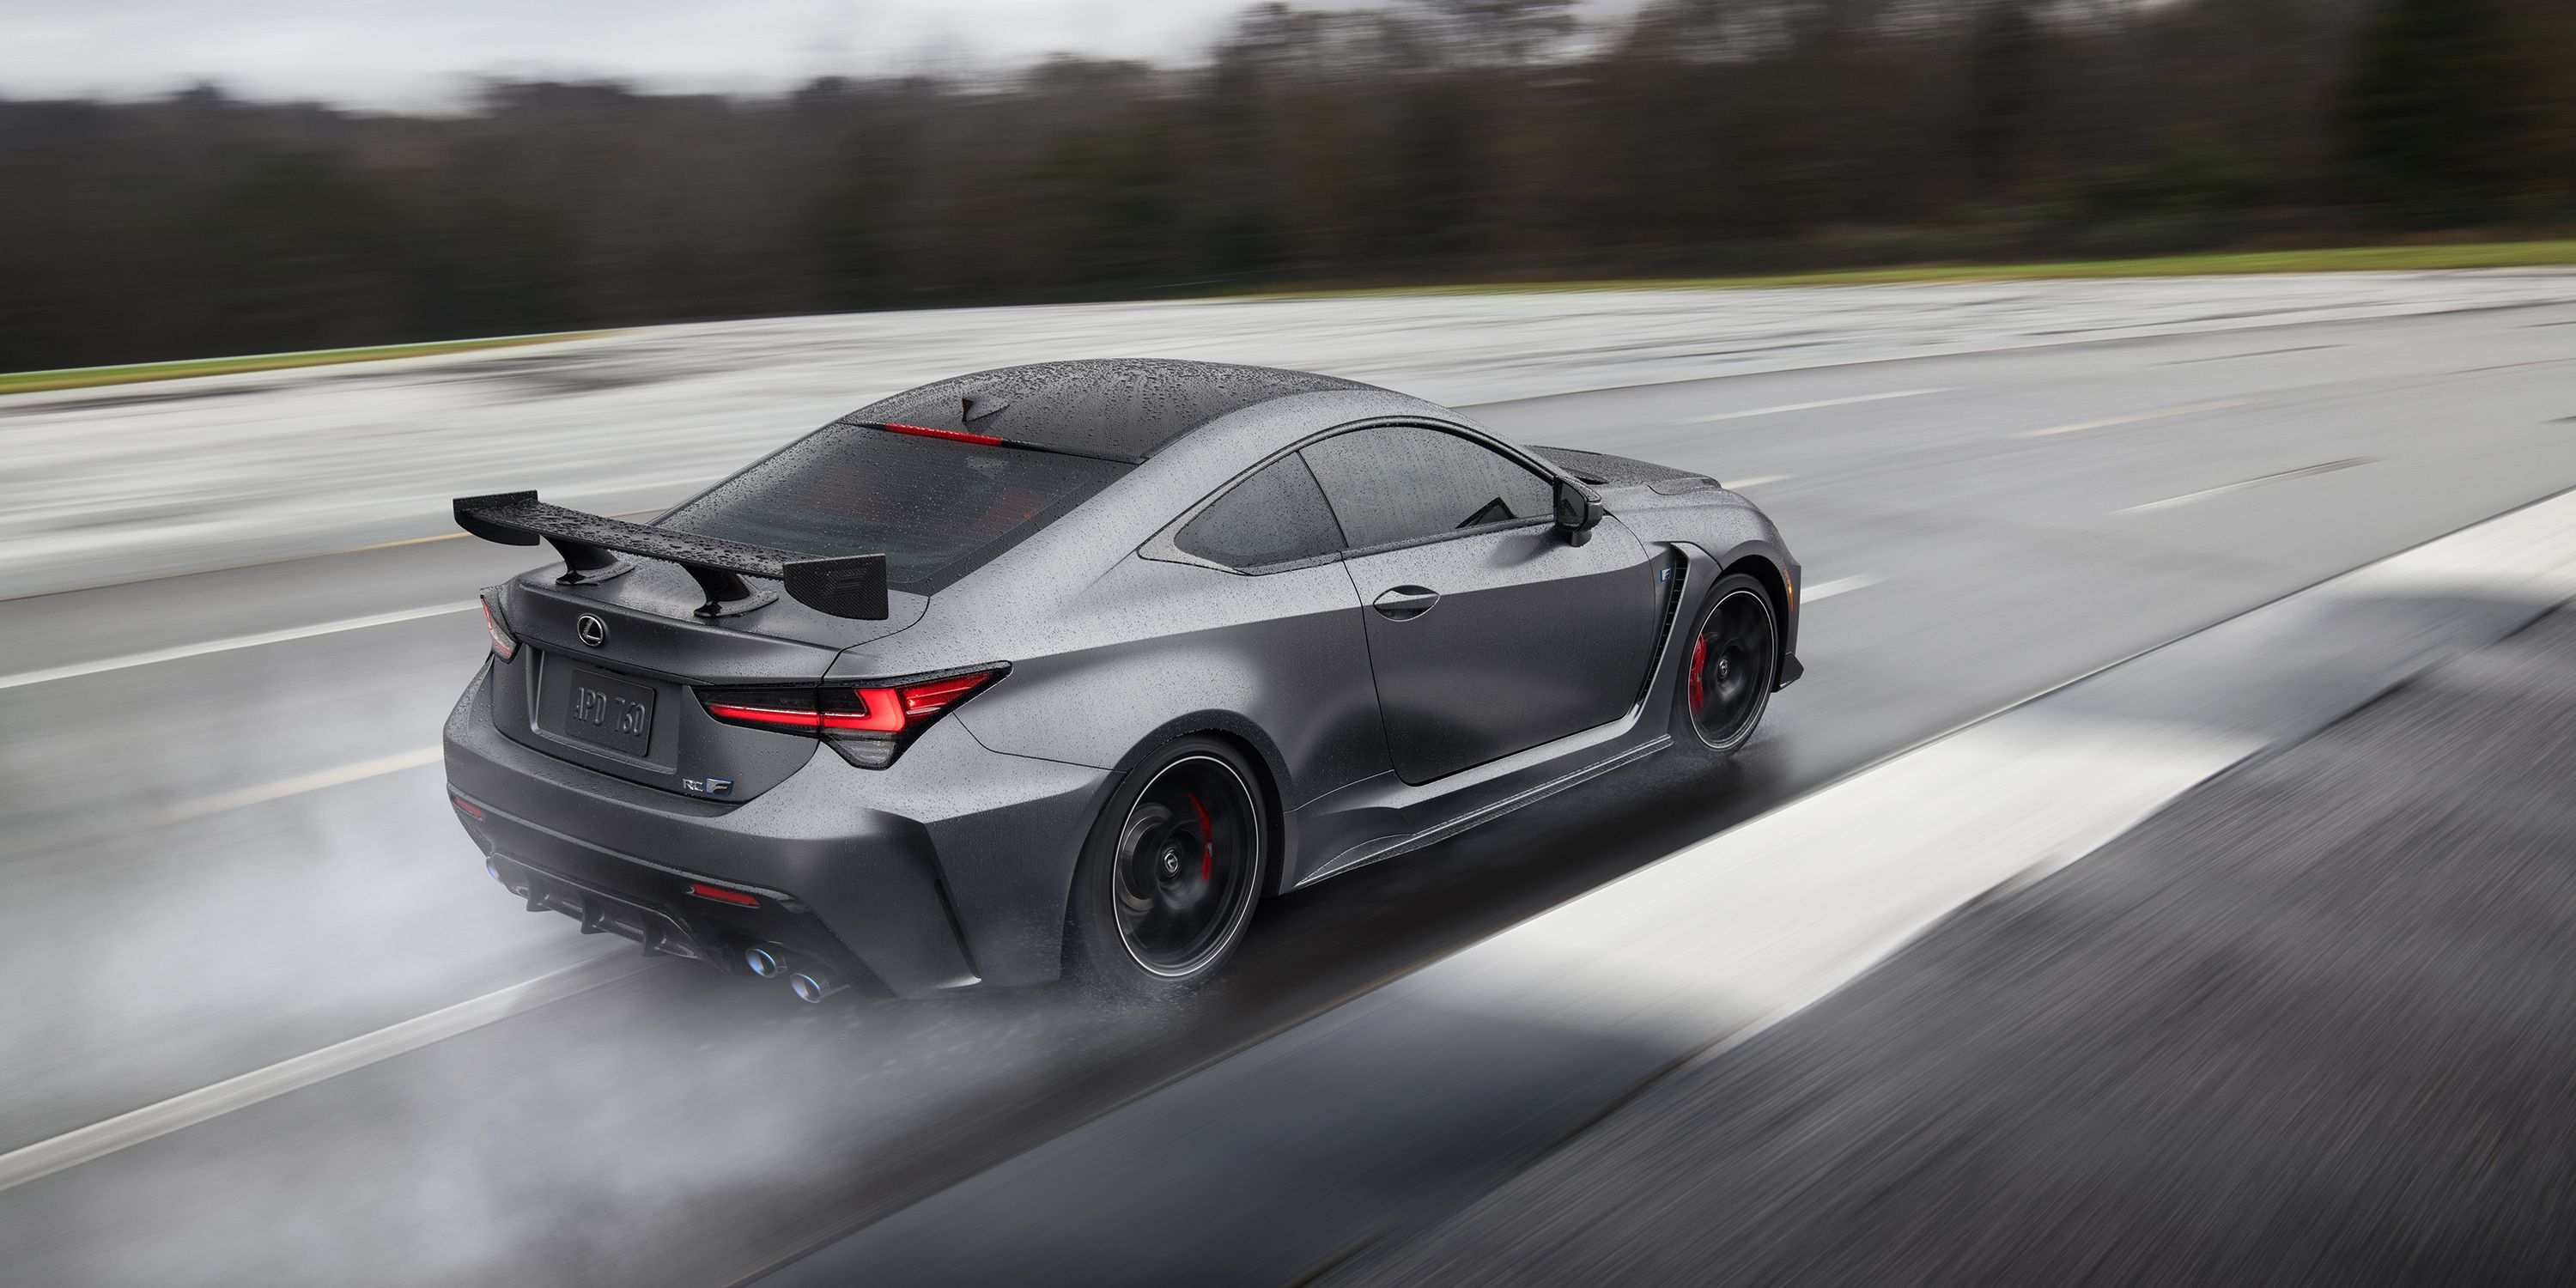 11 Great Rcf Lexus 2020 Release Date for Rcf Lexus 2020